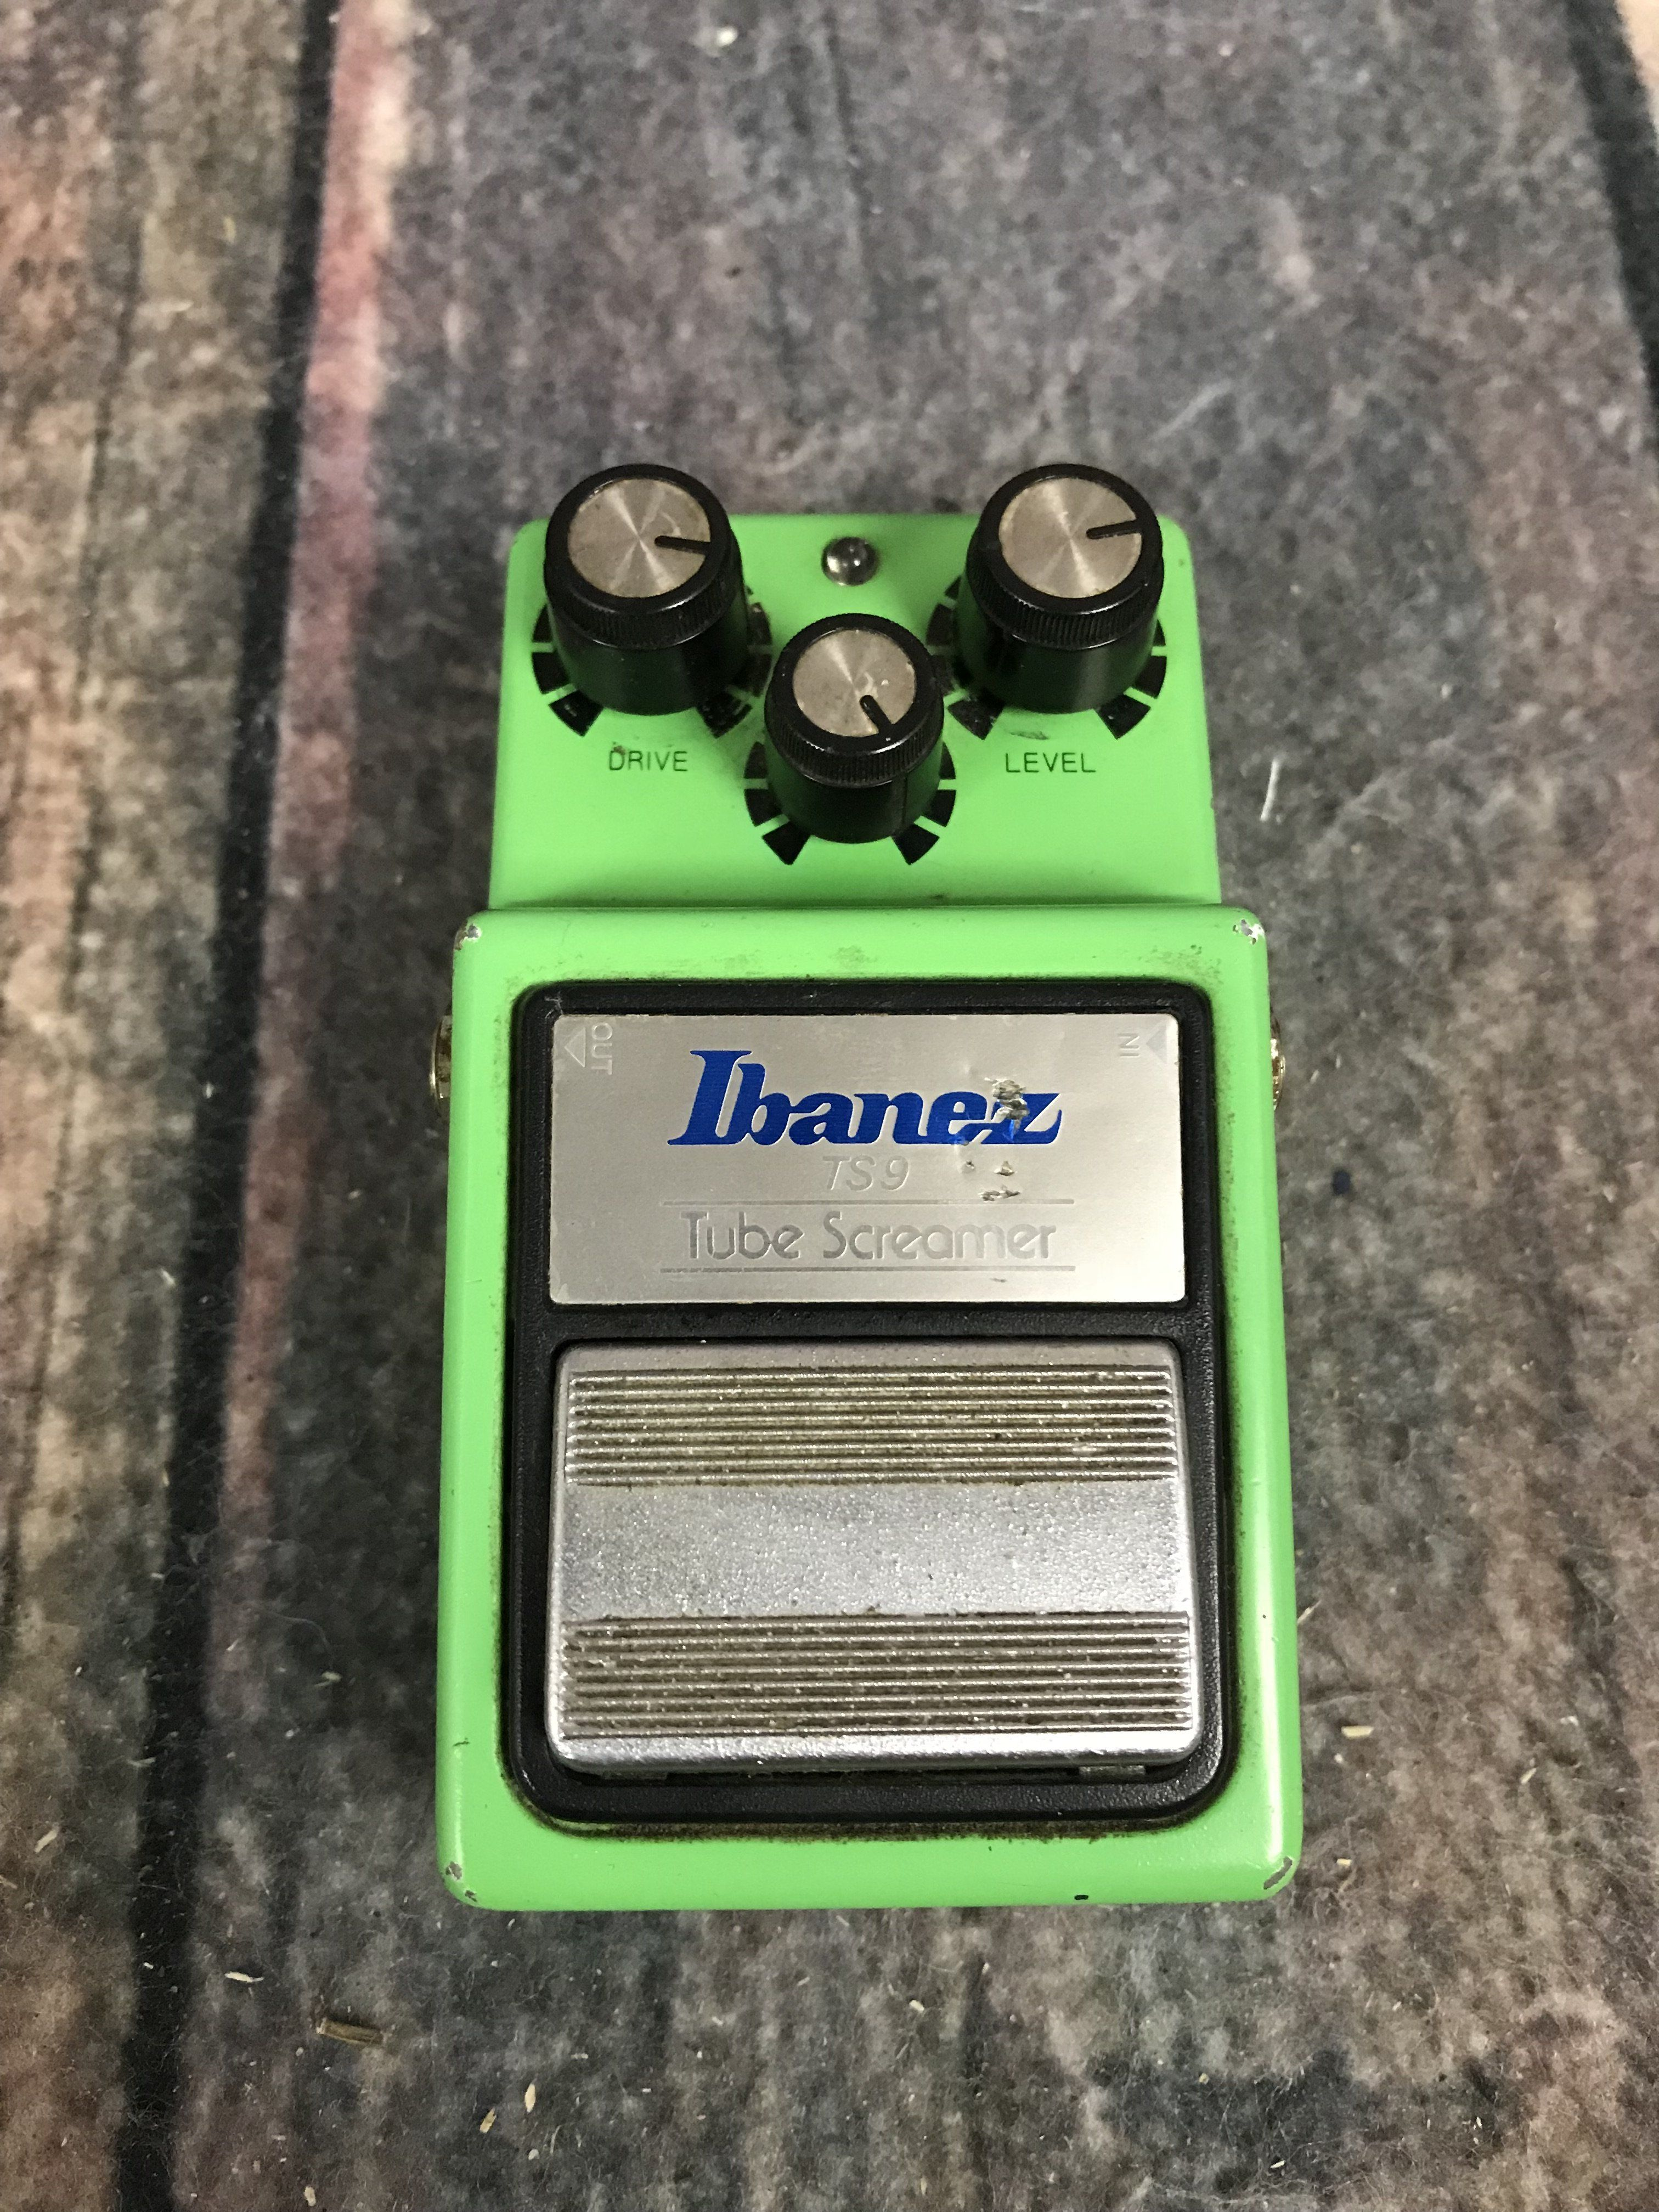 Used Ibanez TS9 Tube Screamer Pedal | Products | Ibanez